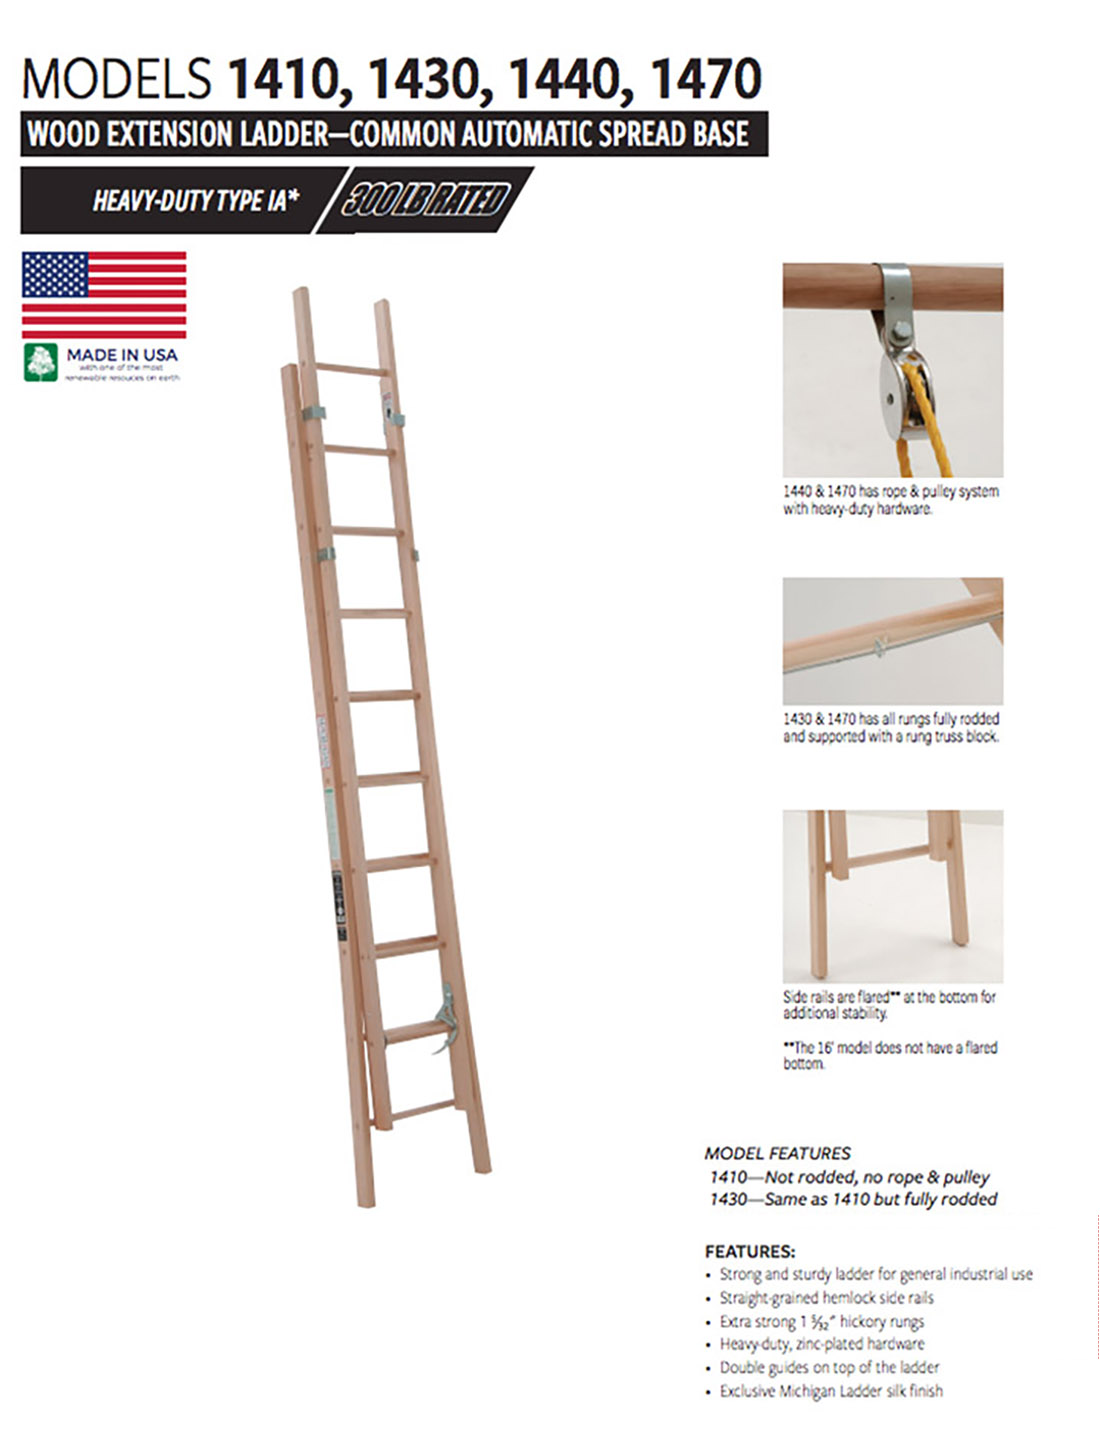 Industrial Grade Wood Extension Ladder